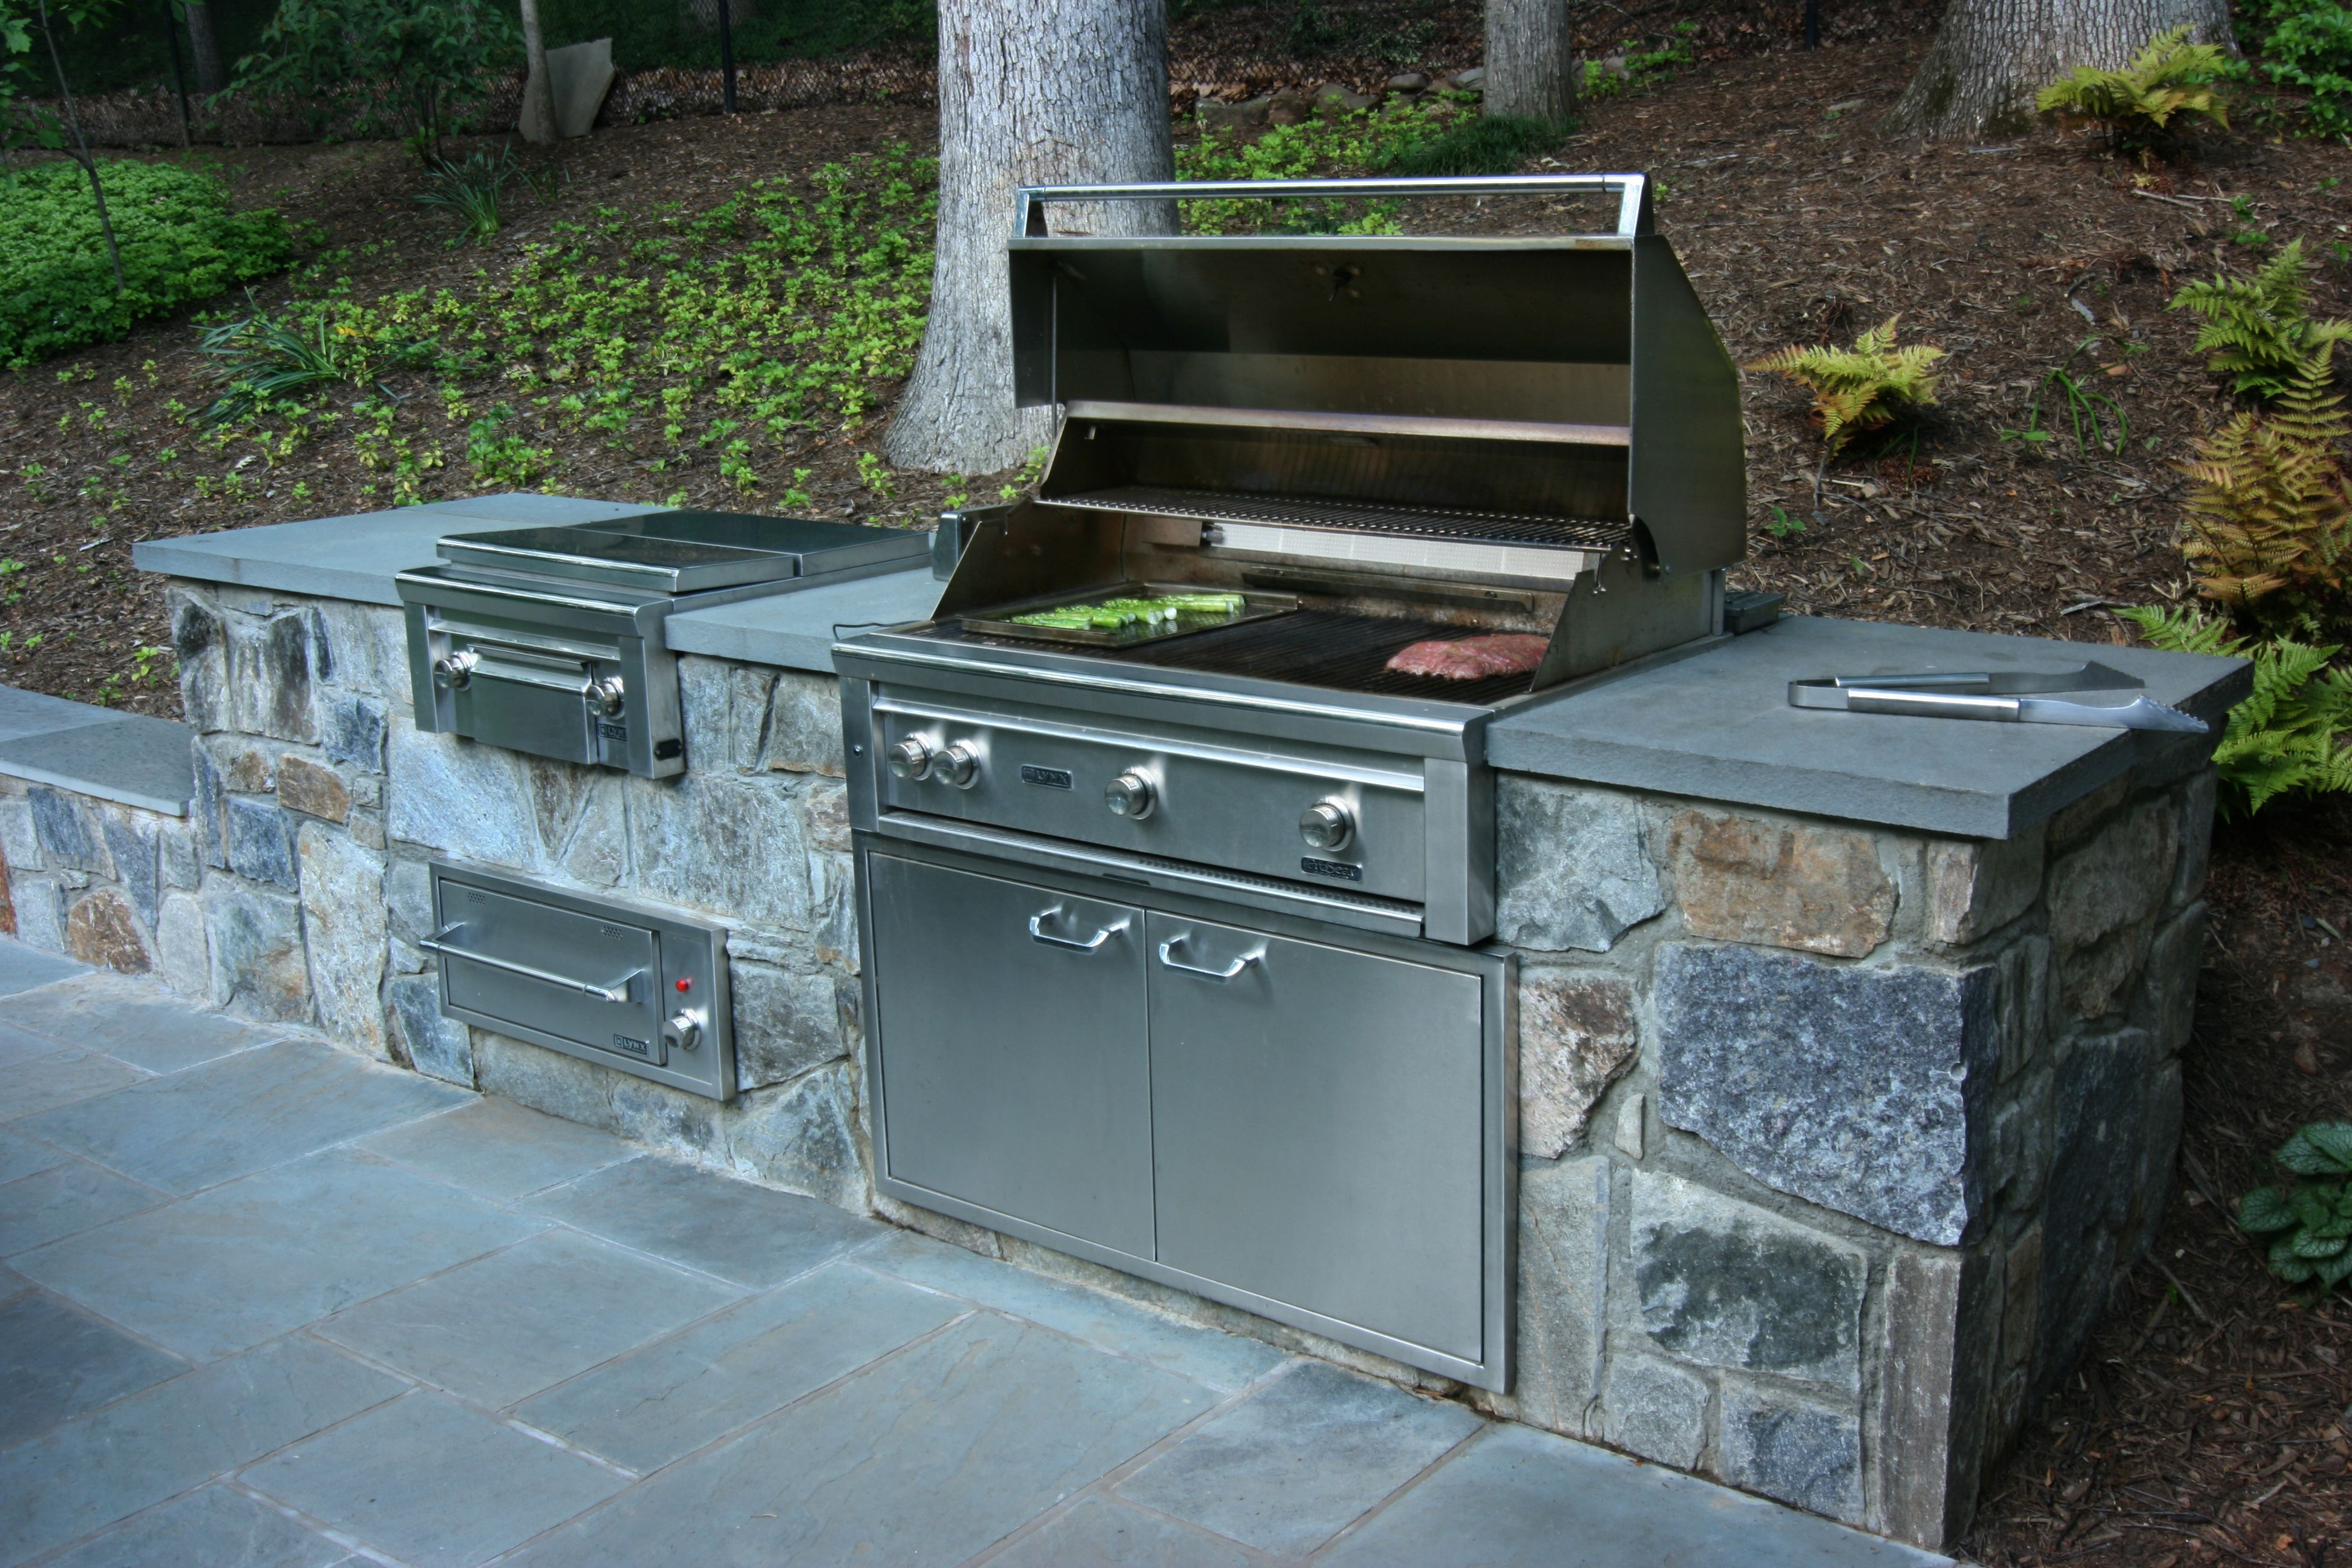 In This Woodland Hillside Setting A Retaining Wall Does Double Duty As A Built In Grill And Warming Draw Outdoor Kitchen Patio Built In Grill Outdoor Kitchen